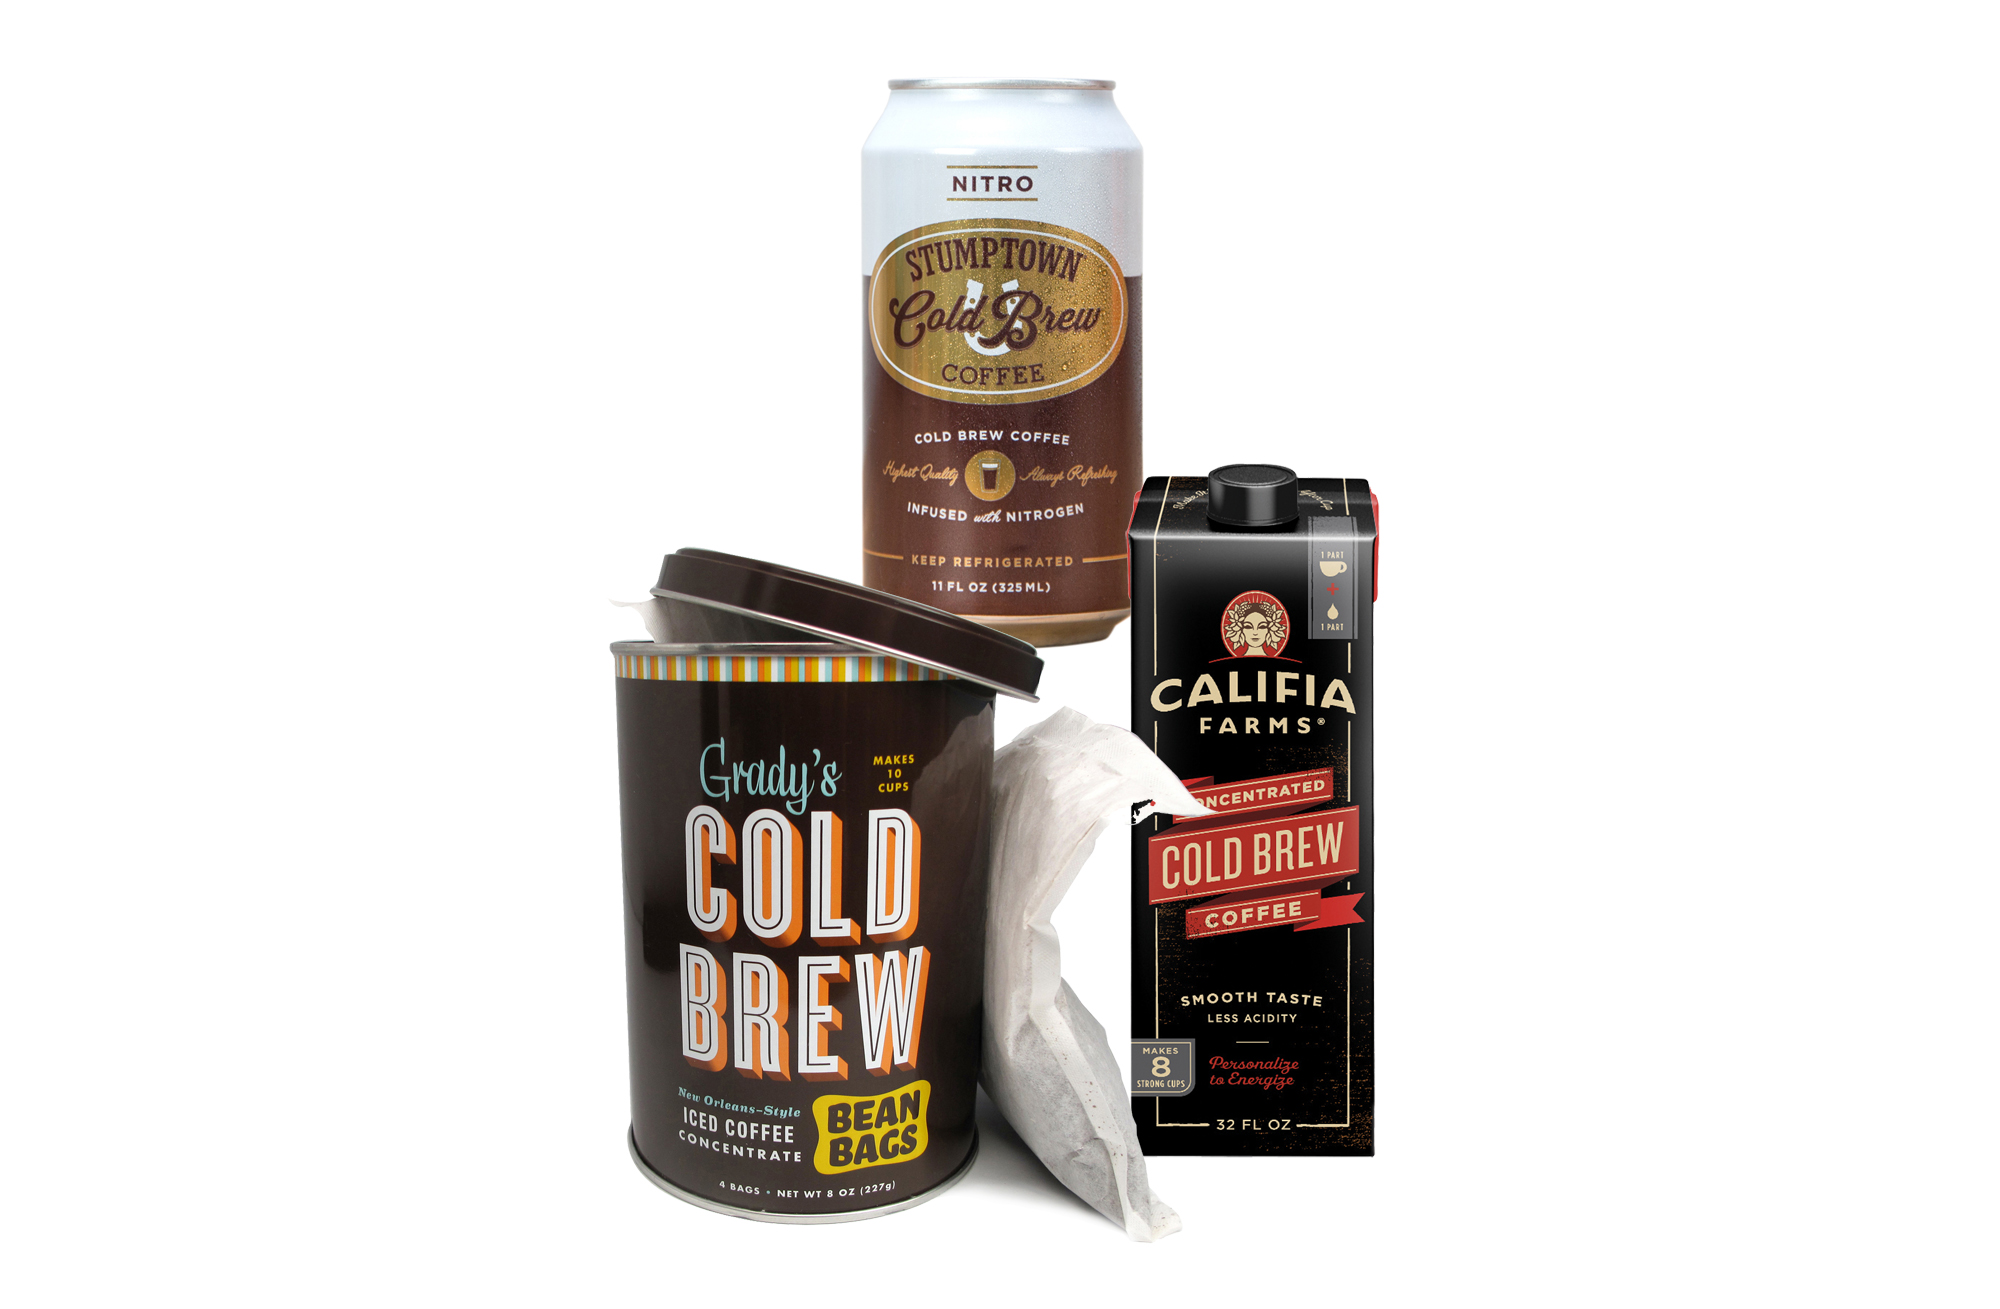 3 cold brew coffees